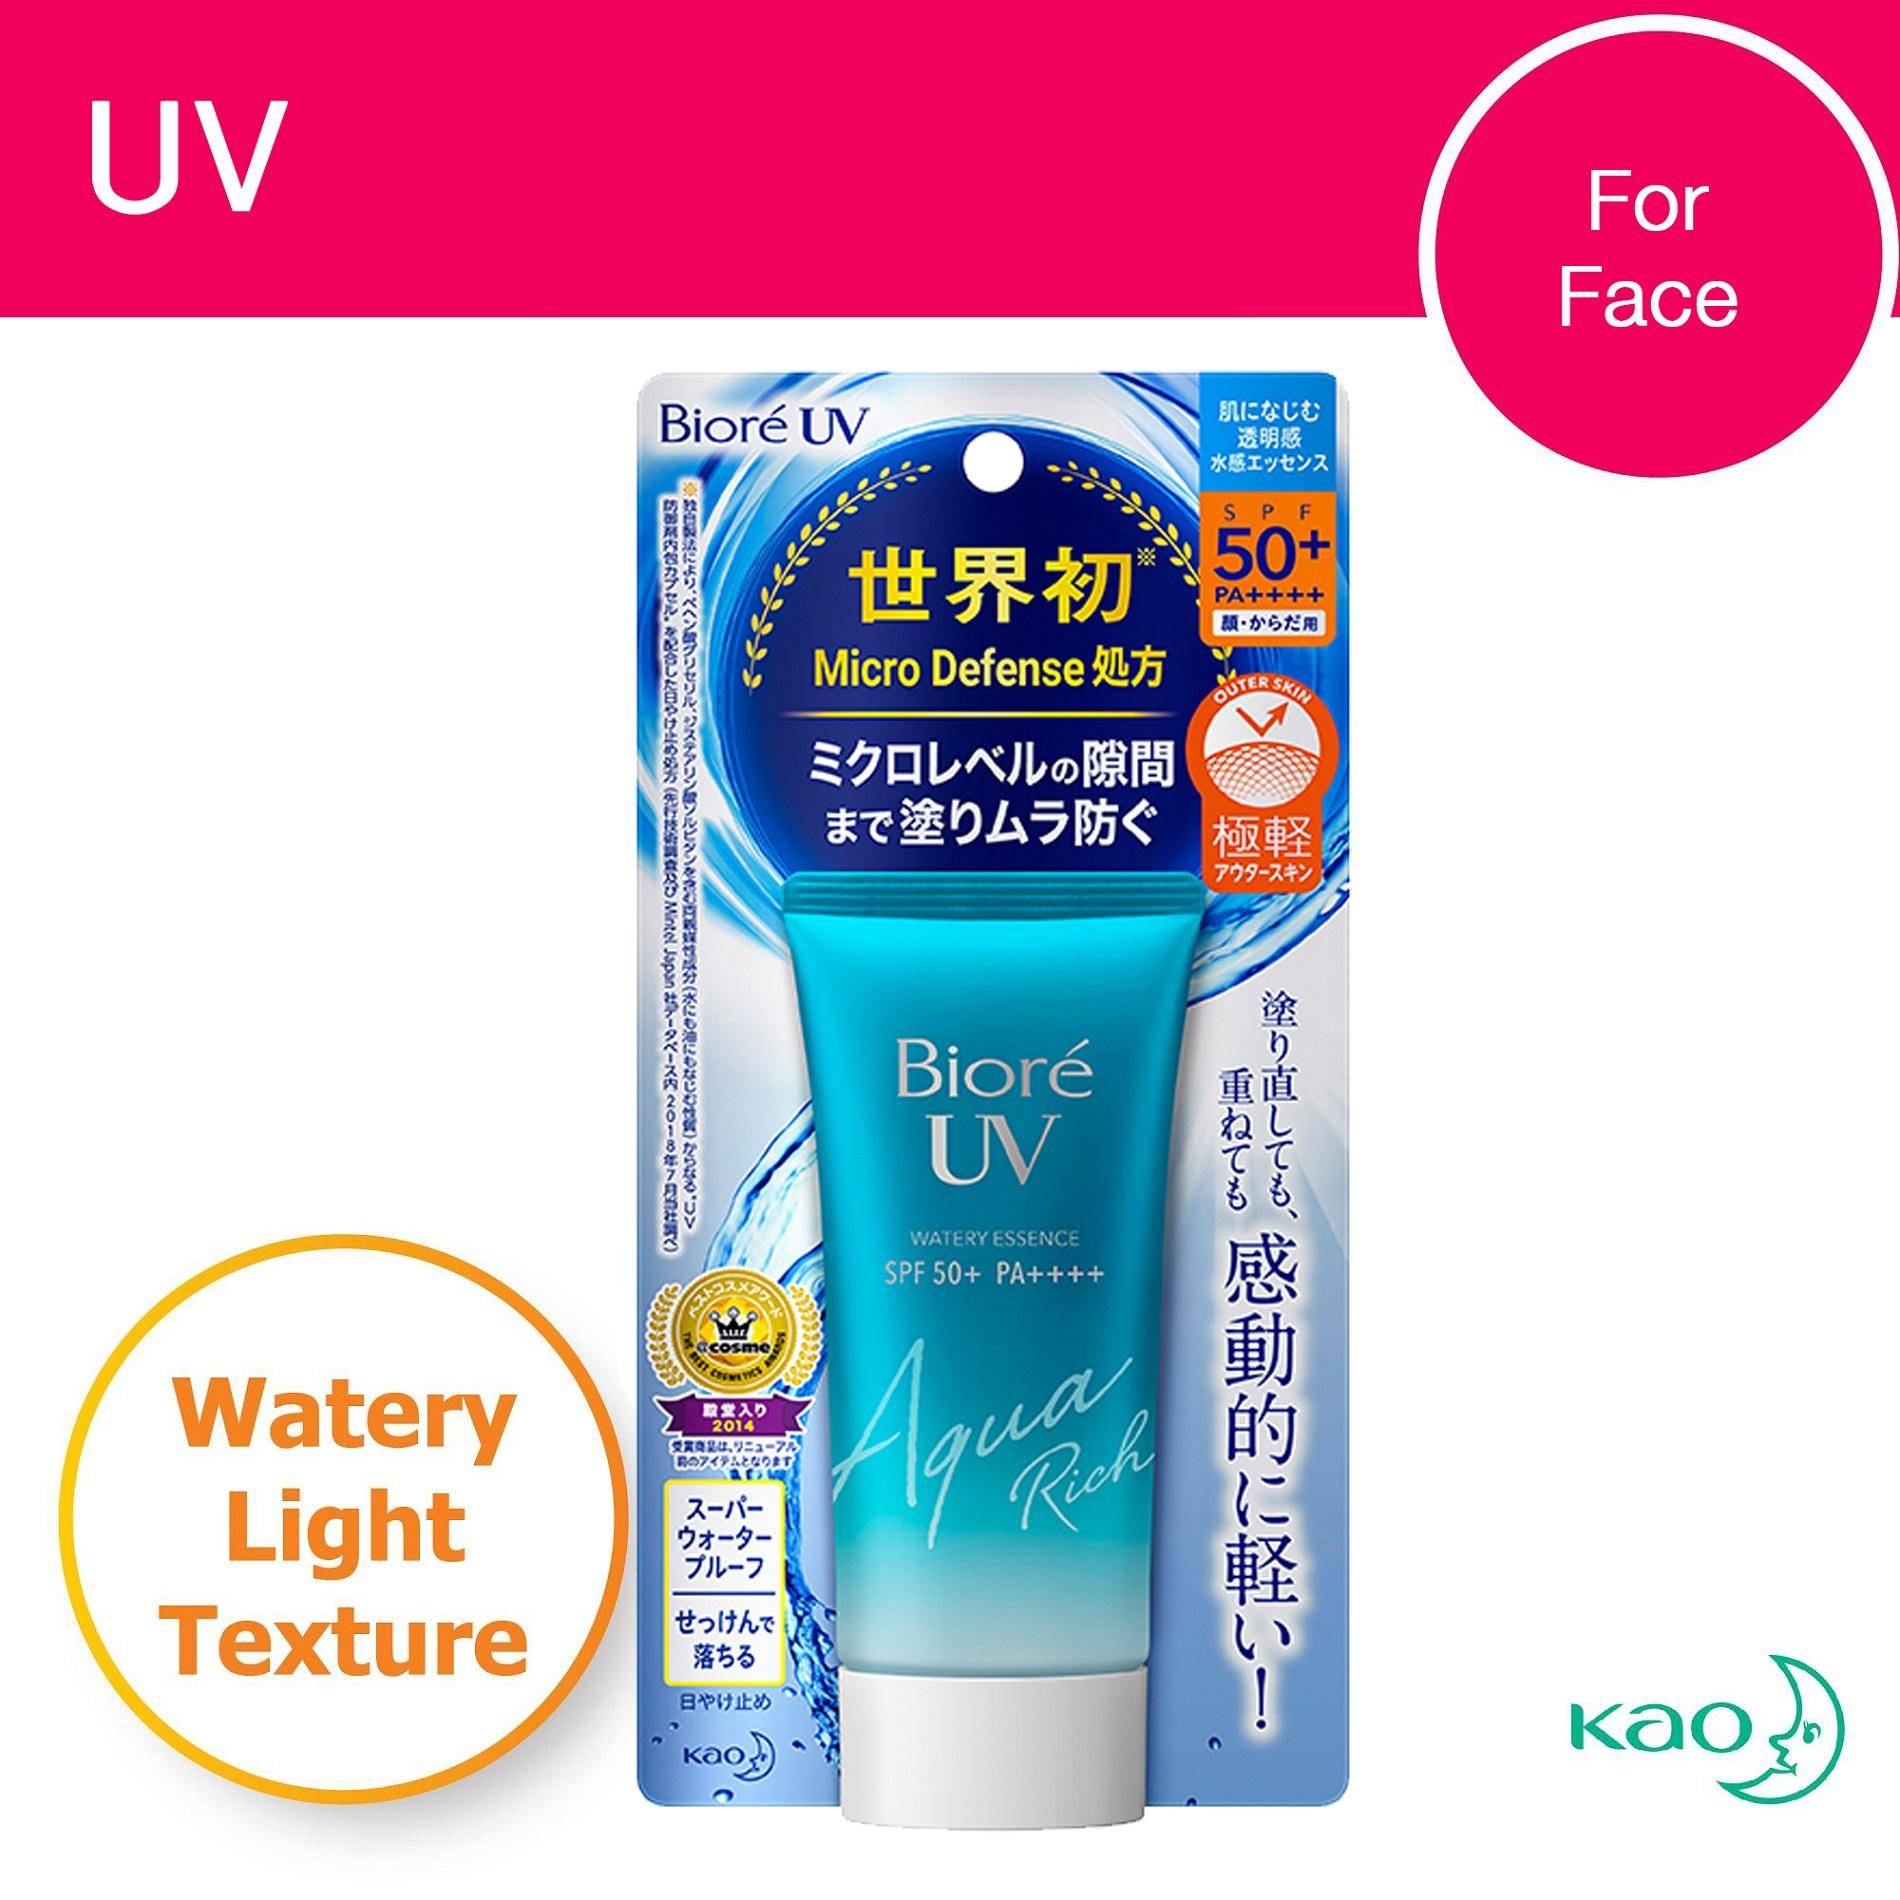 Biore Uv Aqua Rich Watery Essence Spf 50+ Pa++++ 50g By Kao.